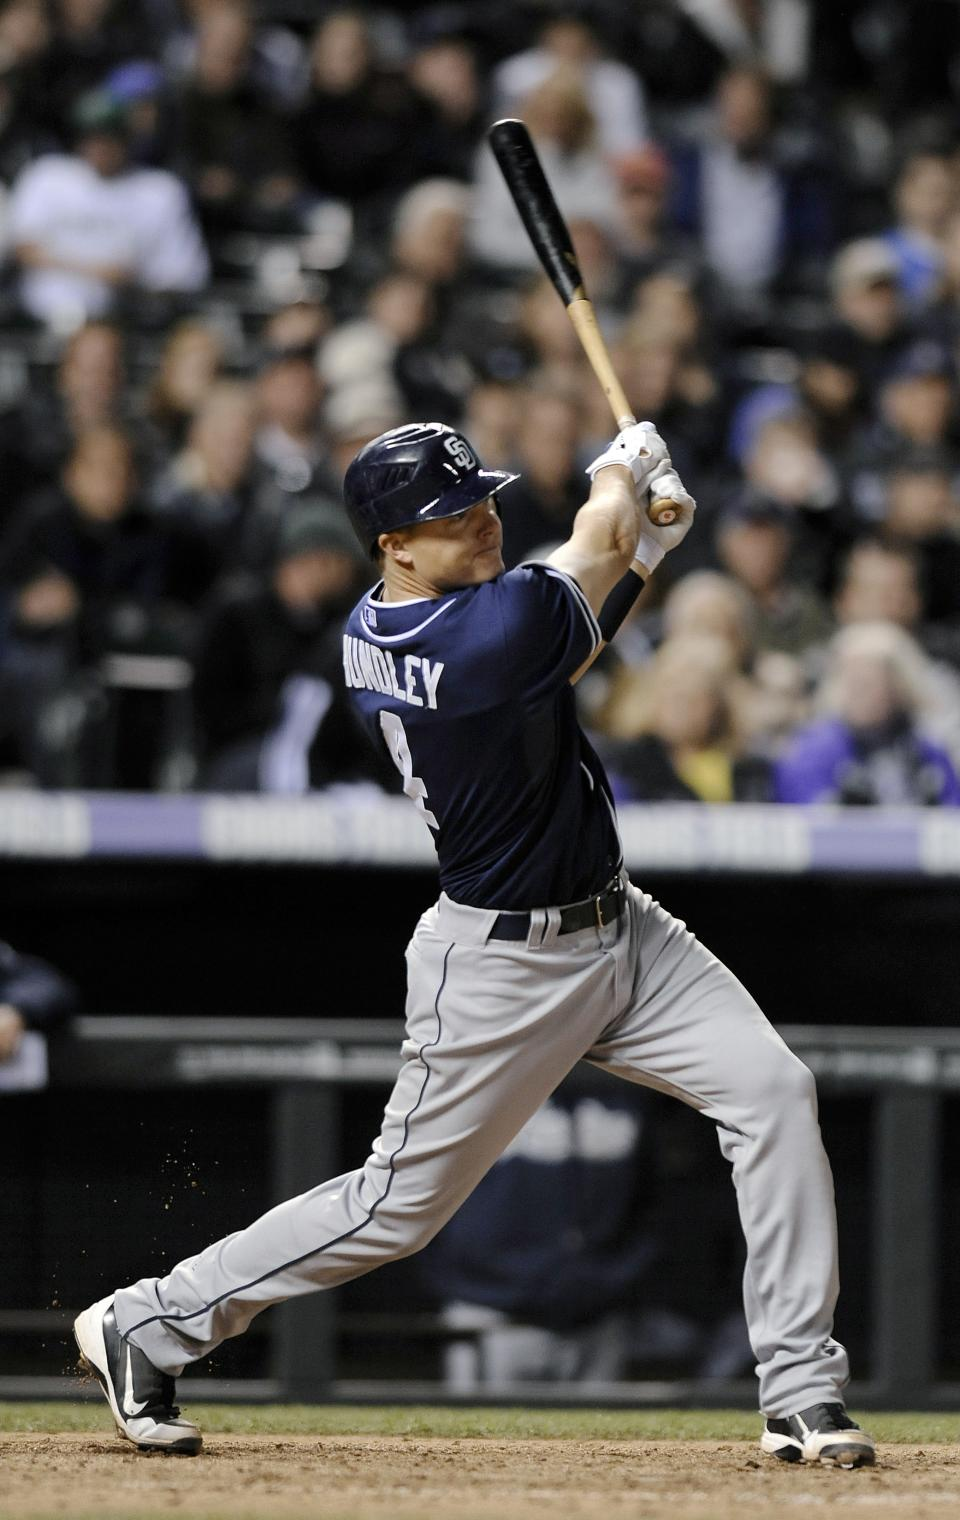 San Diego Padres Nick Hundley hits a solo home run in the ninth inning of a baseball game against the Colorado Rockies on Tuesday, April 17, 2012 in Denver. The Rockies won 5-3. Jamie Moyer became the oldest pitcher to win a major league game. (AP Photo/Chris Schneider)